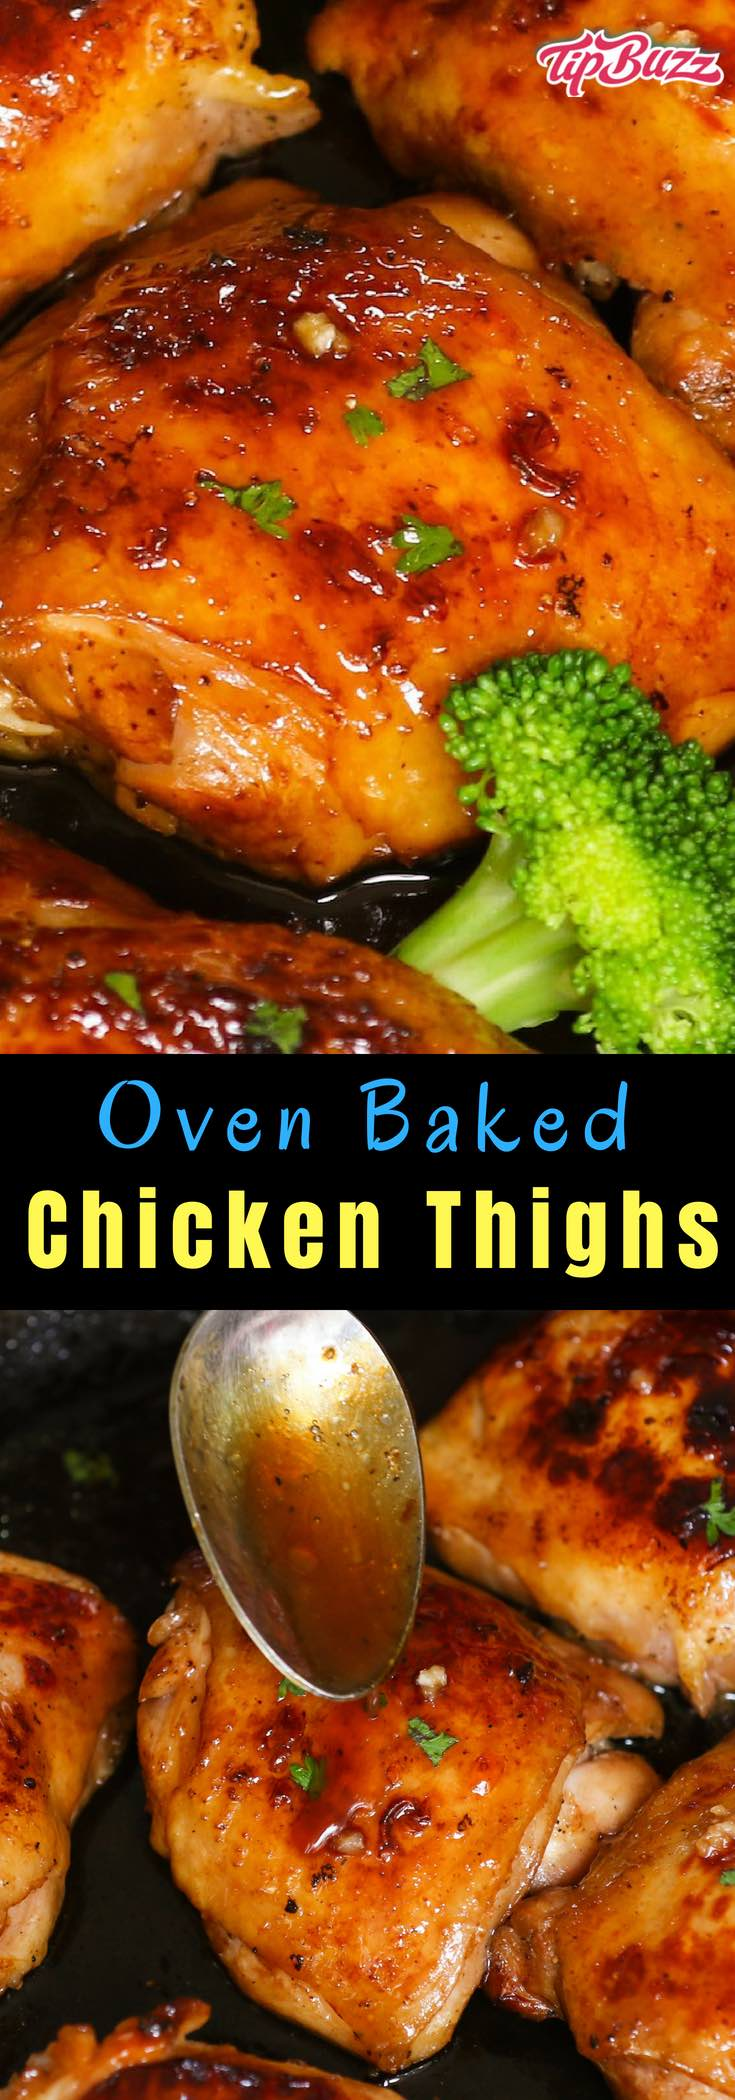 Oven Baked Chicken Thighs are juicy, tender and full of flavor. With a few tips and some simple ingredients, this never-dry chicken thighs with restaurant quality can be easily made at home!